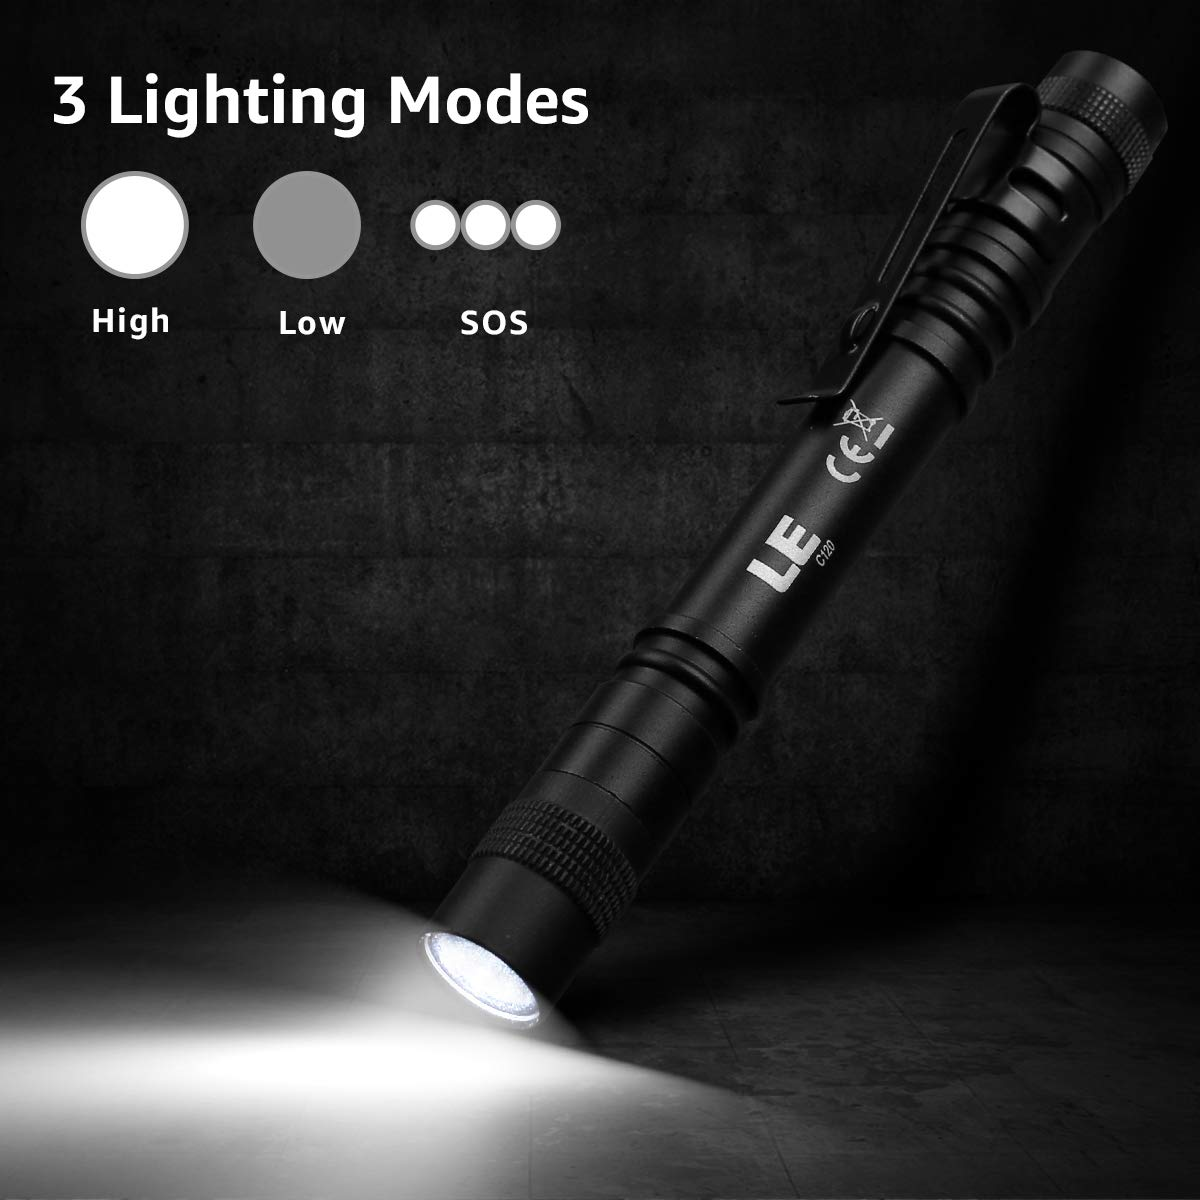 Small Pack of 2 LE LED Pocket Pen Light Flashlight Repair Stylus PenLight with Clip Work Mini Perfect Flashlights for Inspection